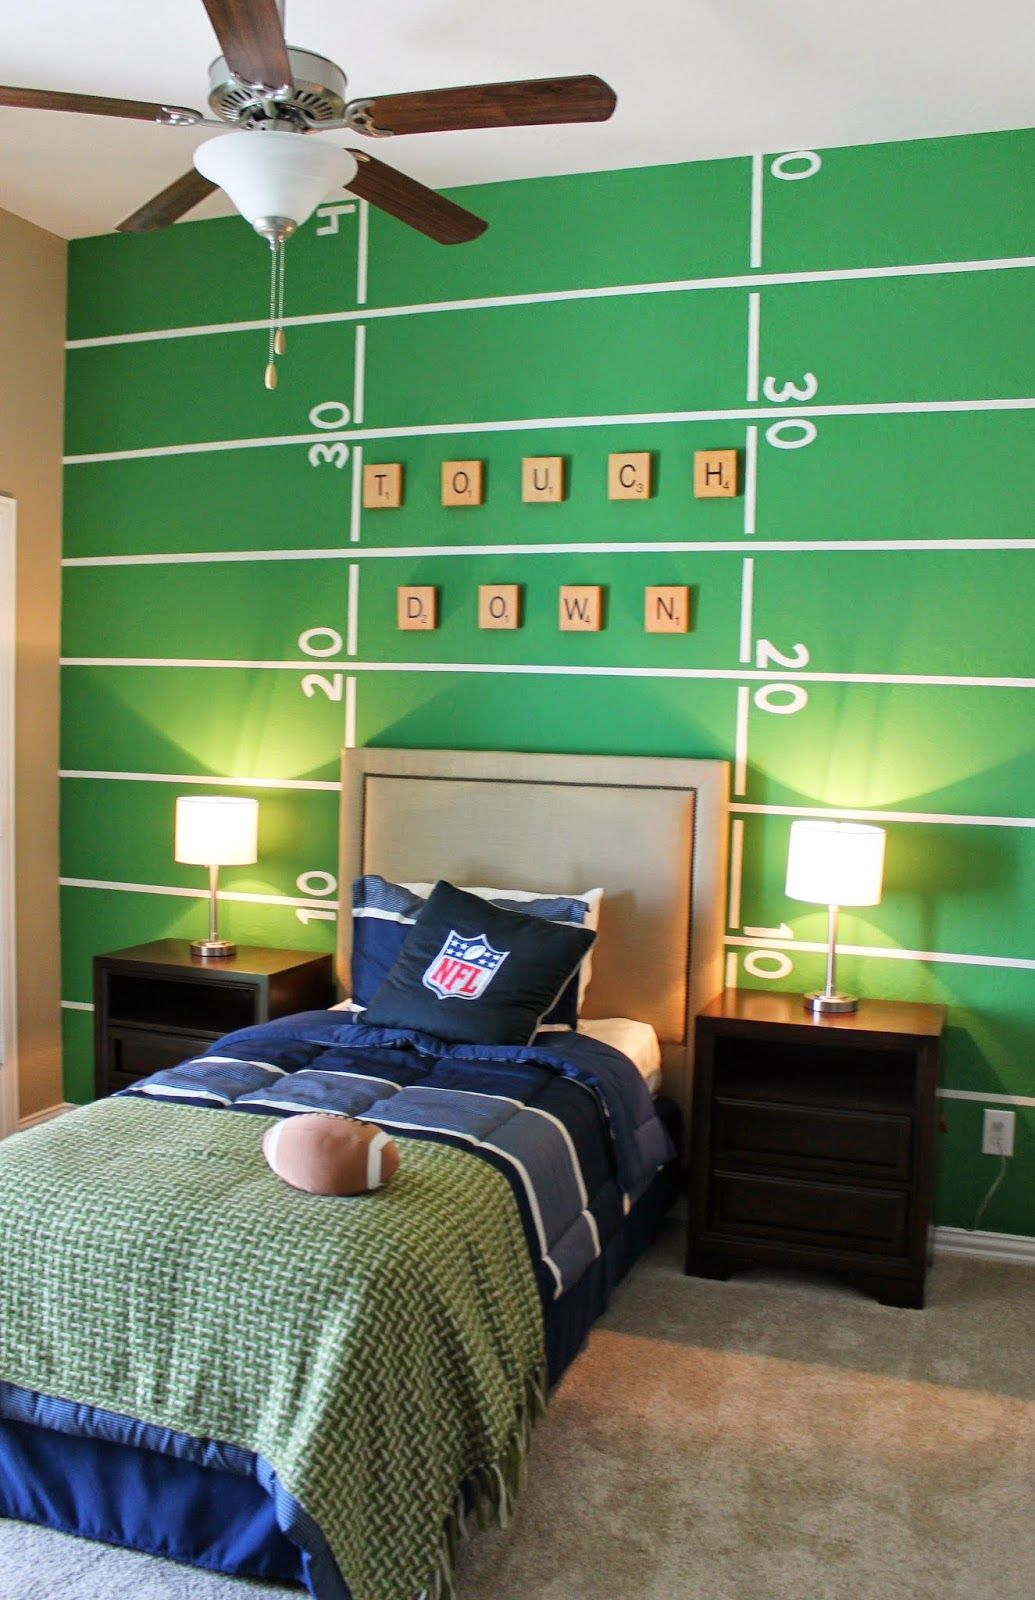 10 Super Fun Themes For Creative Kids Rooms Football